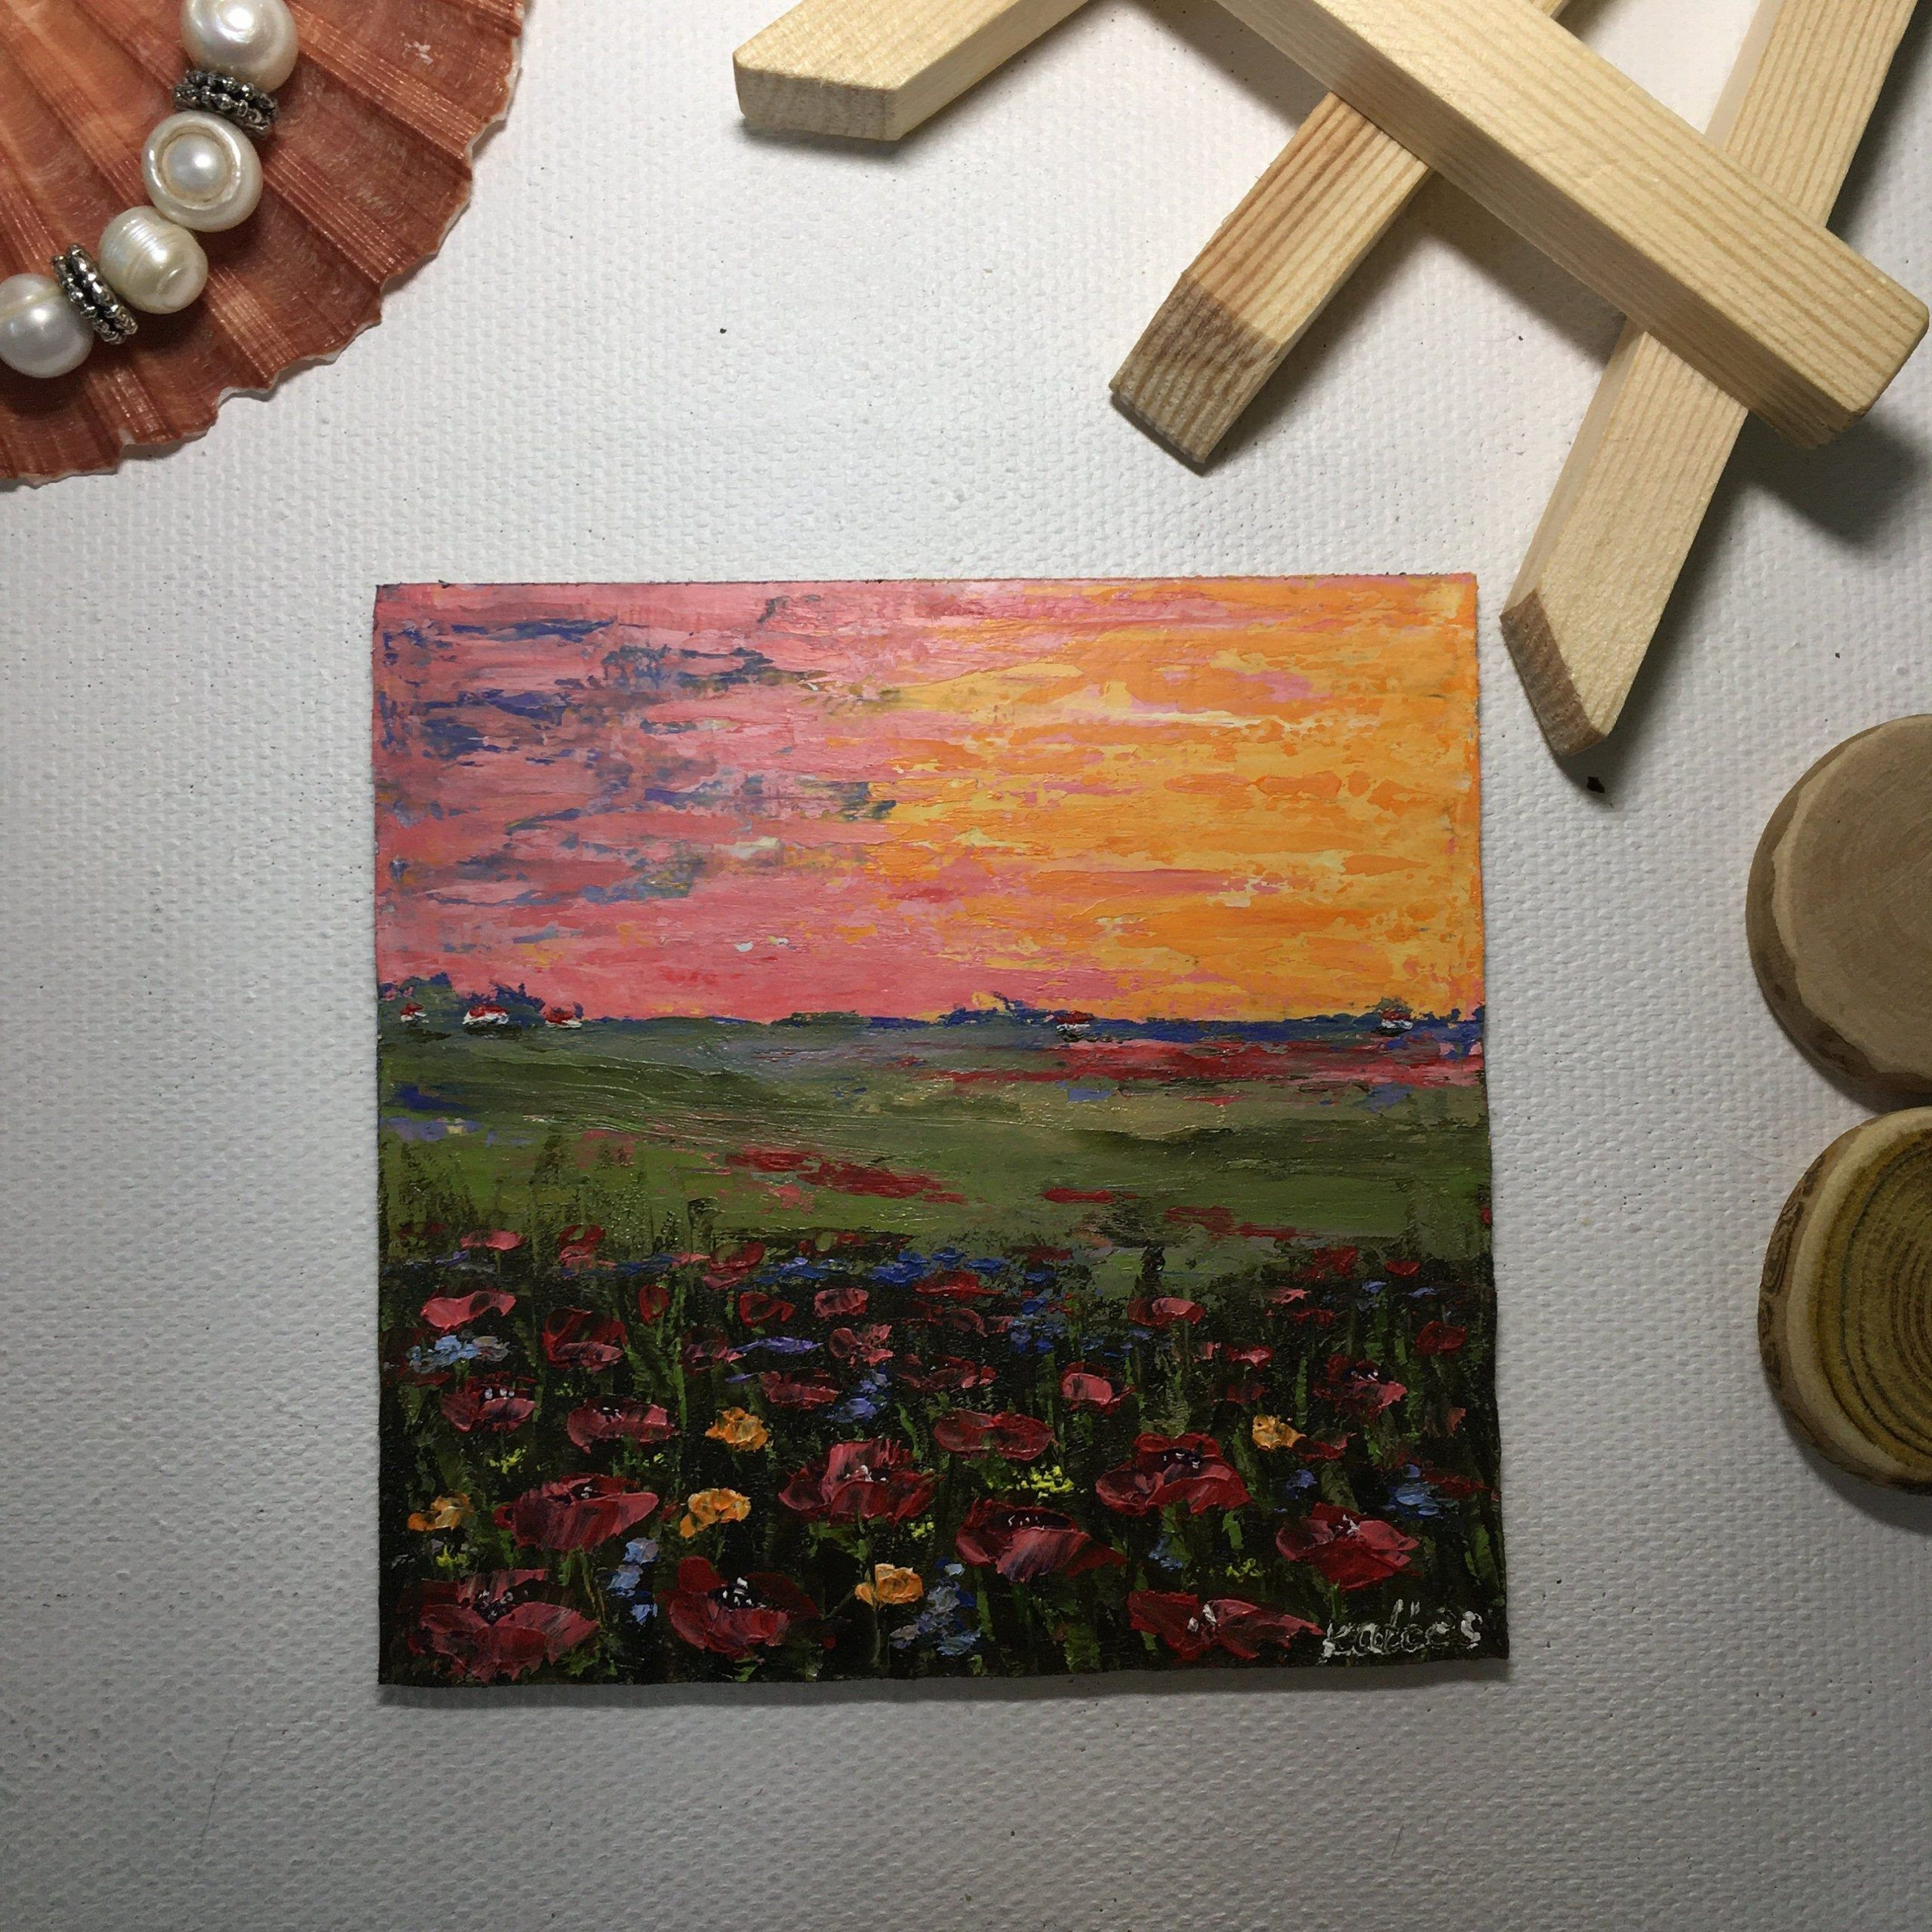 Original miniature oil painting beautiful sunset in rustic style Provencal landscape hand-painted oil painting with poppy flowers.#beautiful #flowers #handpainted #landscape #miniature #oil #original #painting #poppy #provencal #rustic #style #sunset